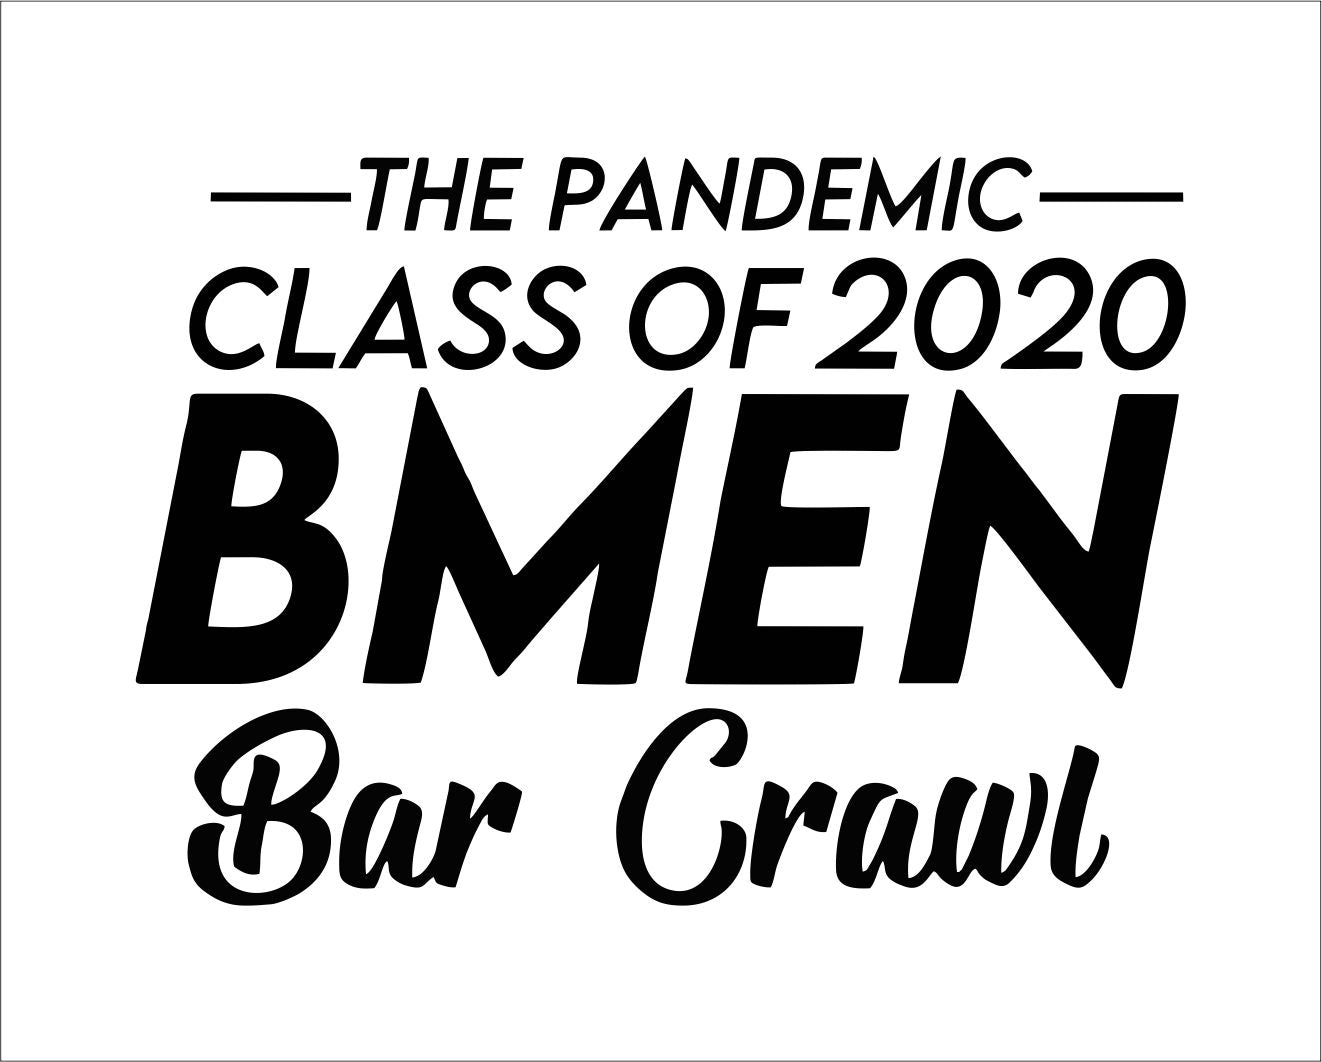 BMEN Bar Crawl